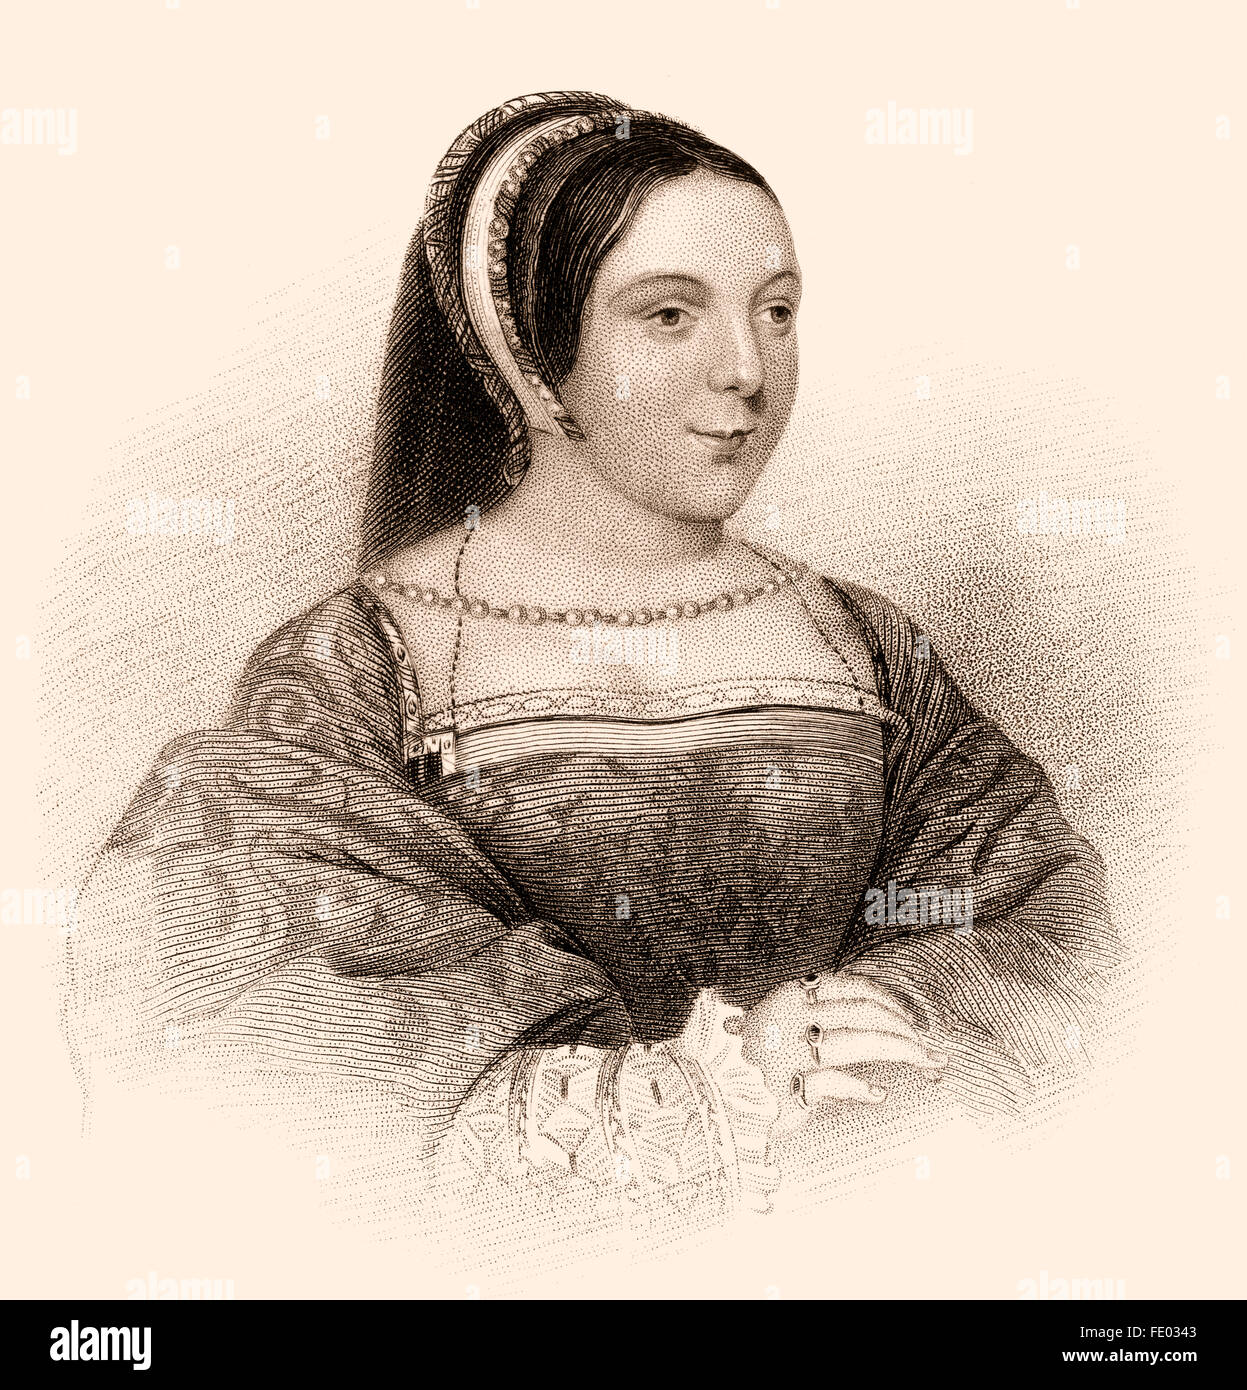 Margaret Tudor, 1489-1541, Queen of Scots from 1503 until 1513 as the wife of King James IV of Scotland - Stock Image